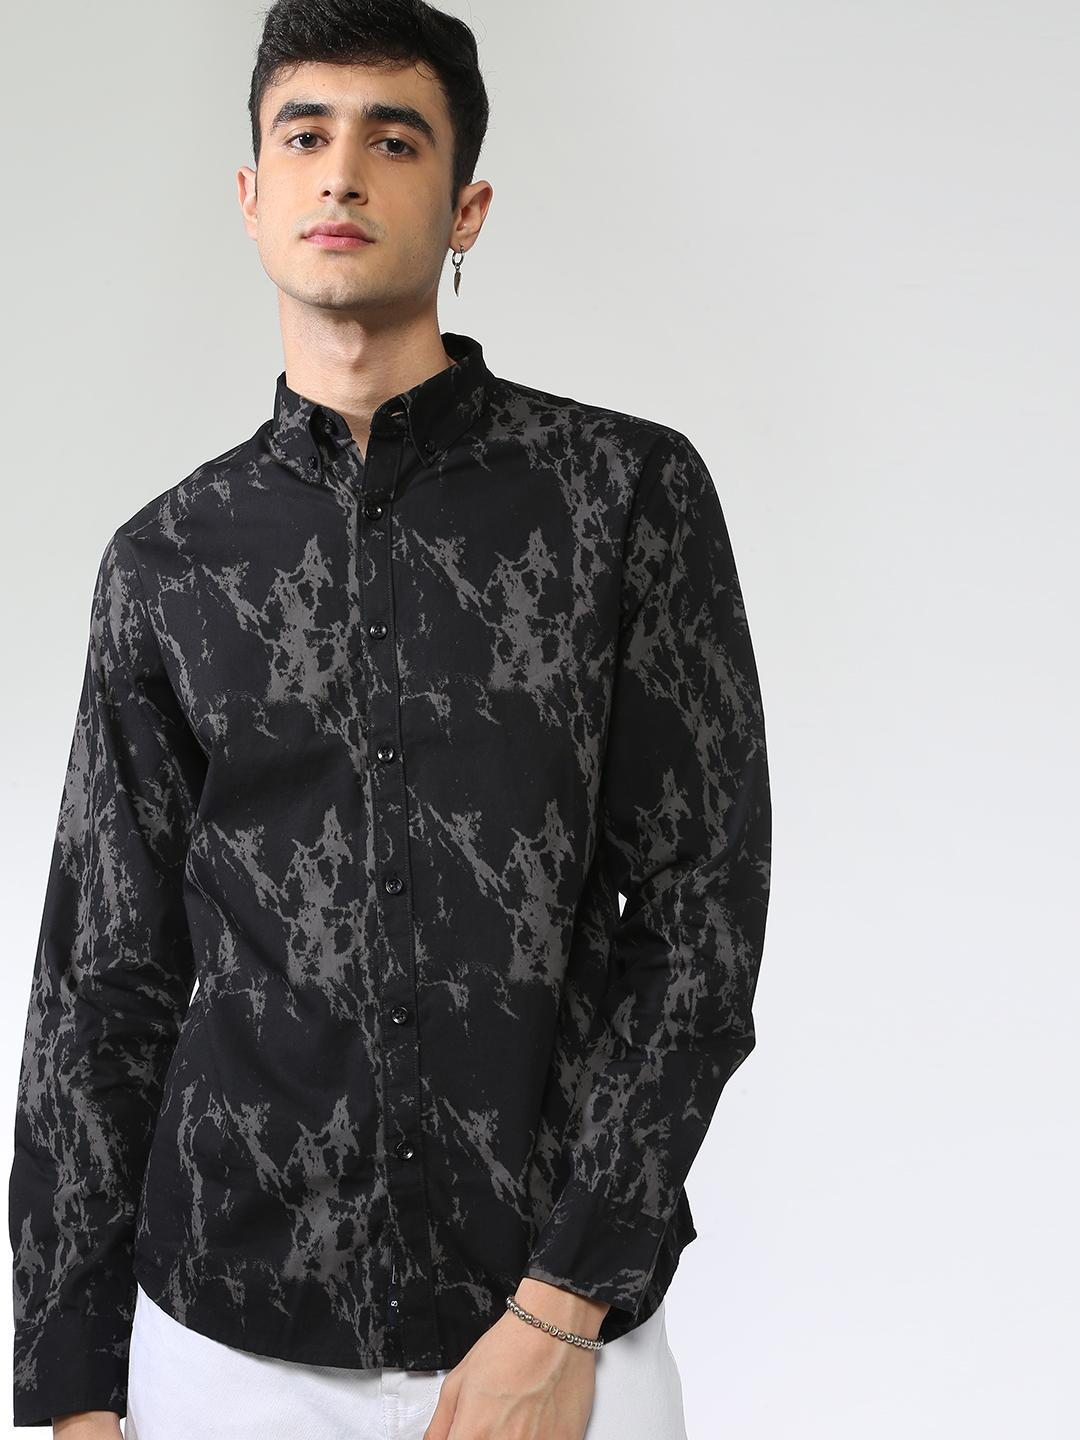 Blue Saint Black Camo Print Long Sleeve Shirt 1